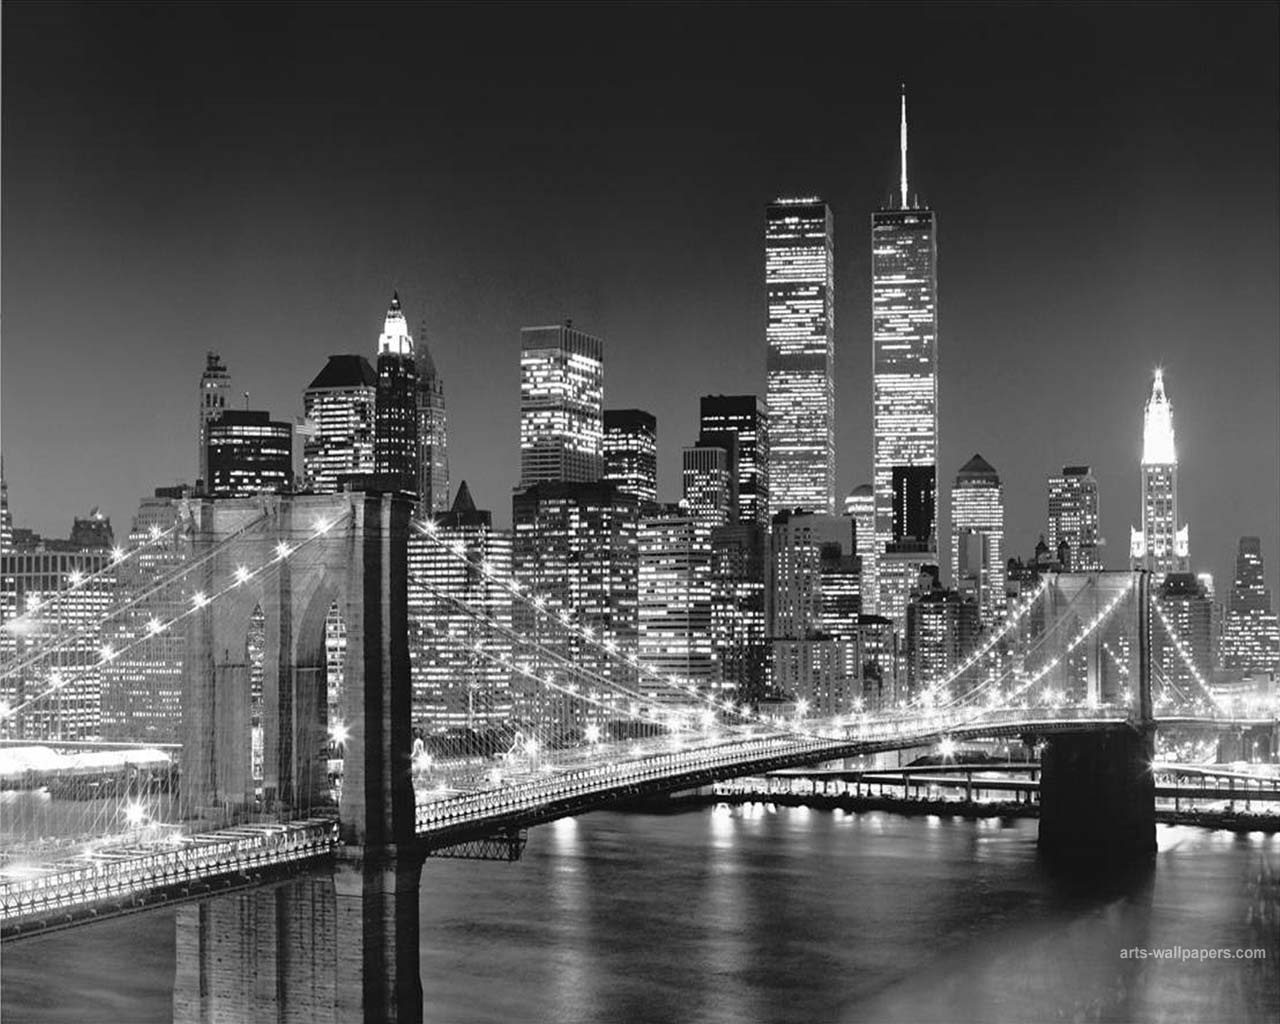 Free Download New York Wallpaper Black And White 1280x1024